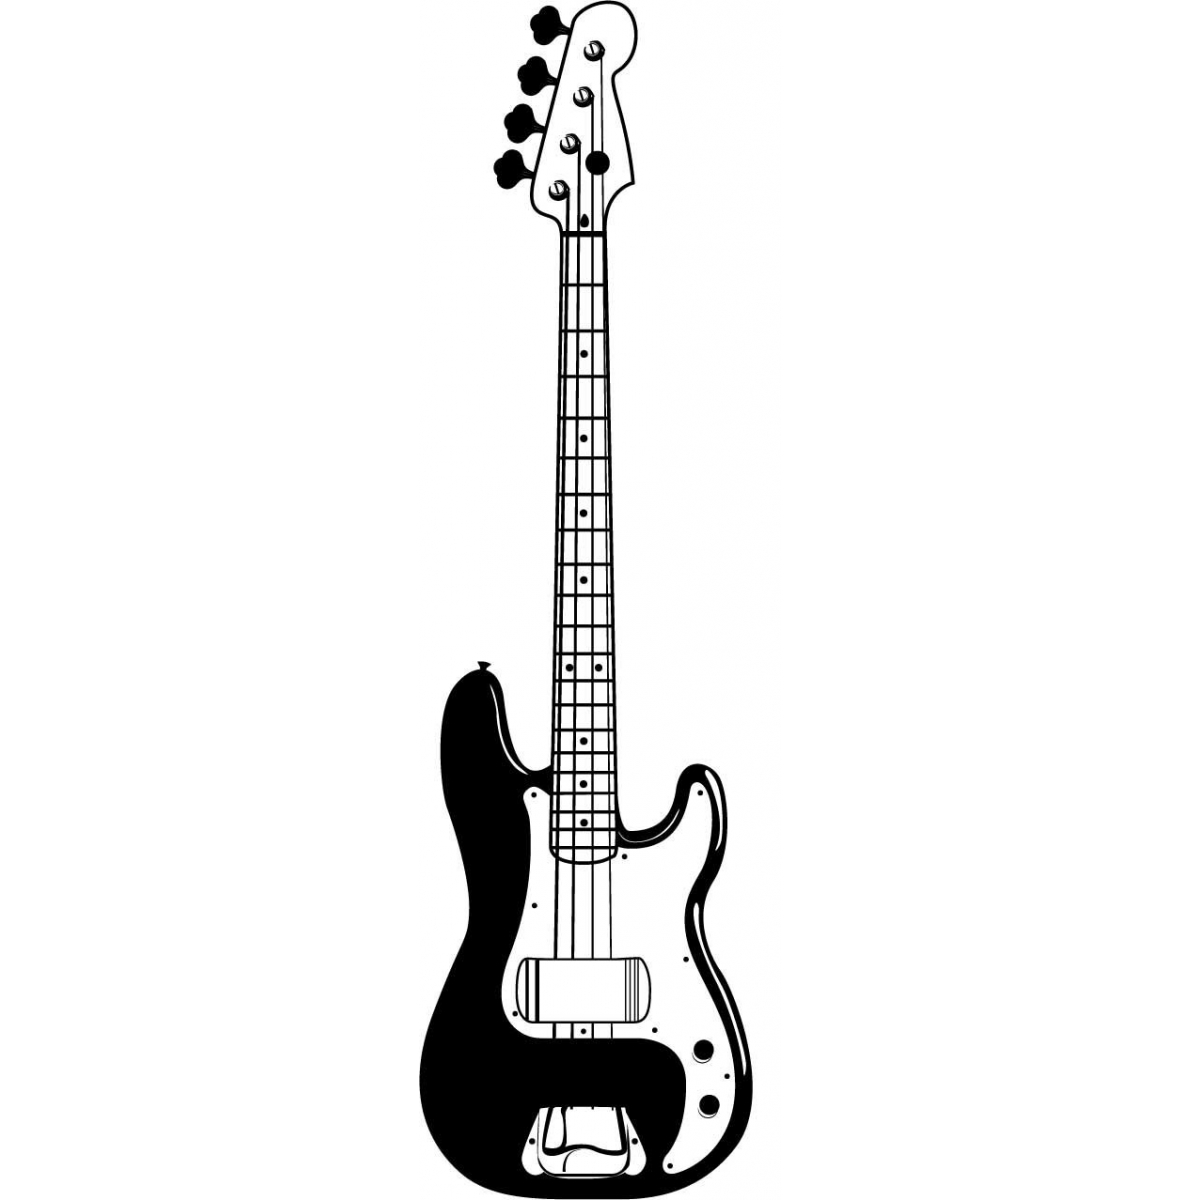 Guitar  black and white picture of an electric guitar free download clip art